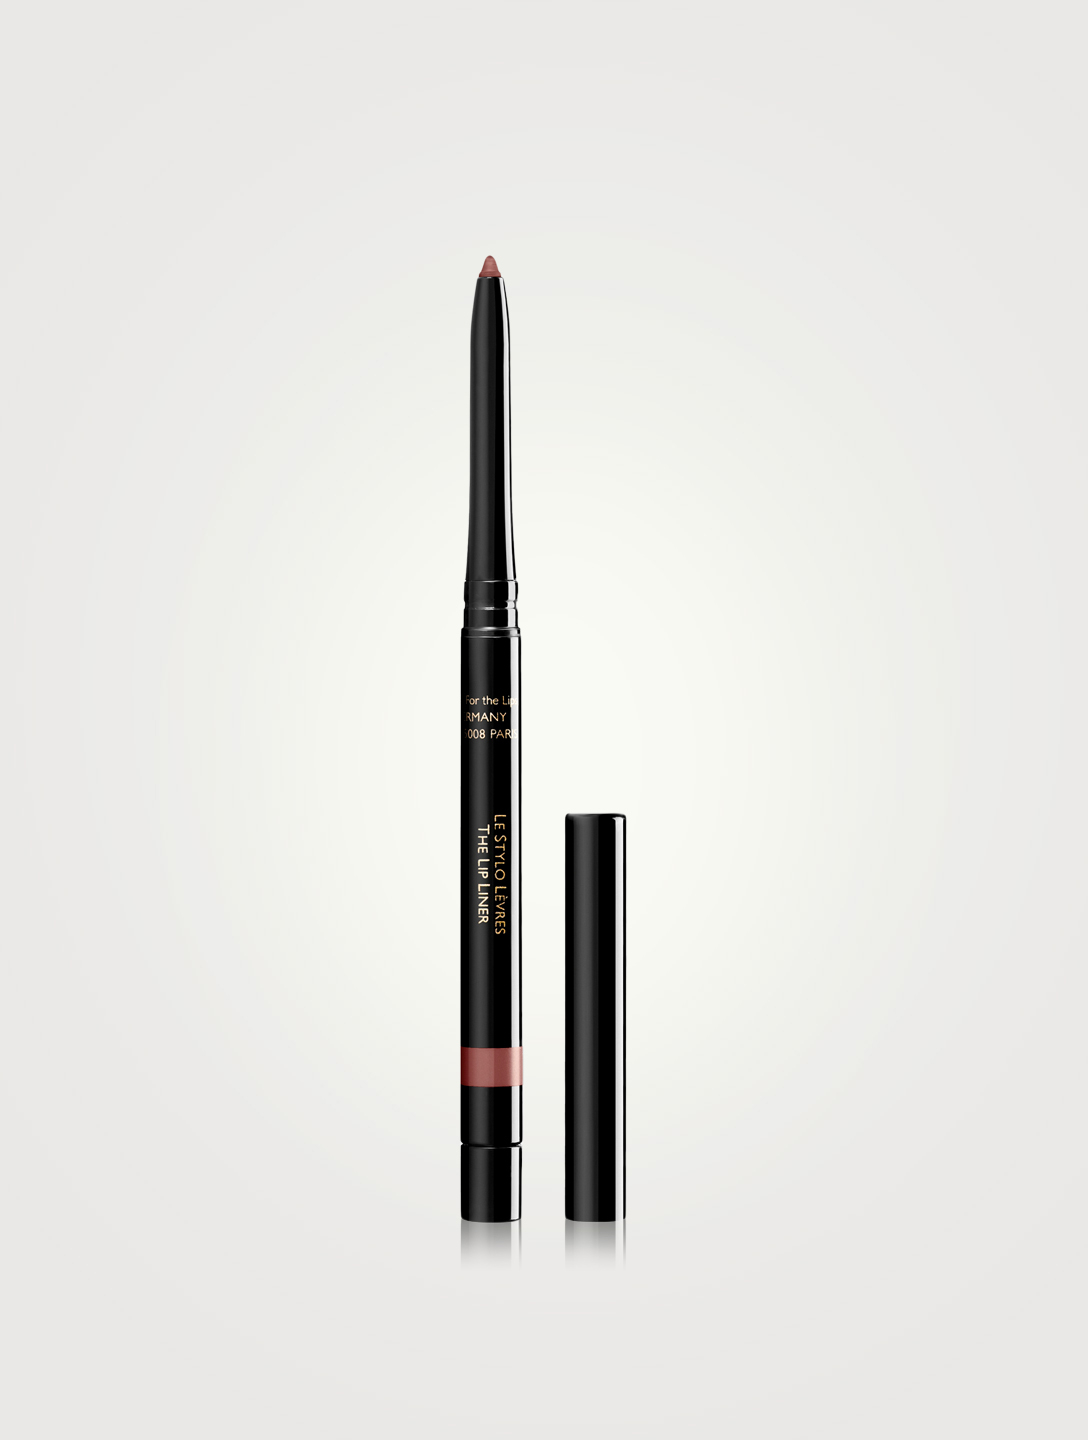 GUERLAIN Le Stylo Lèvres Lasting Colour High-Precision Lip Liner Beauty Neutral